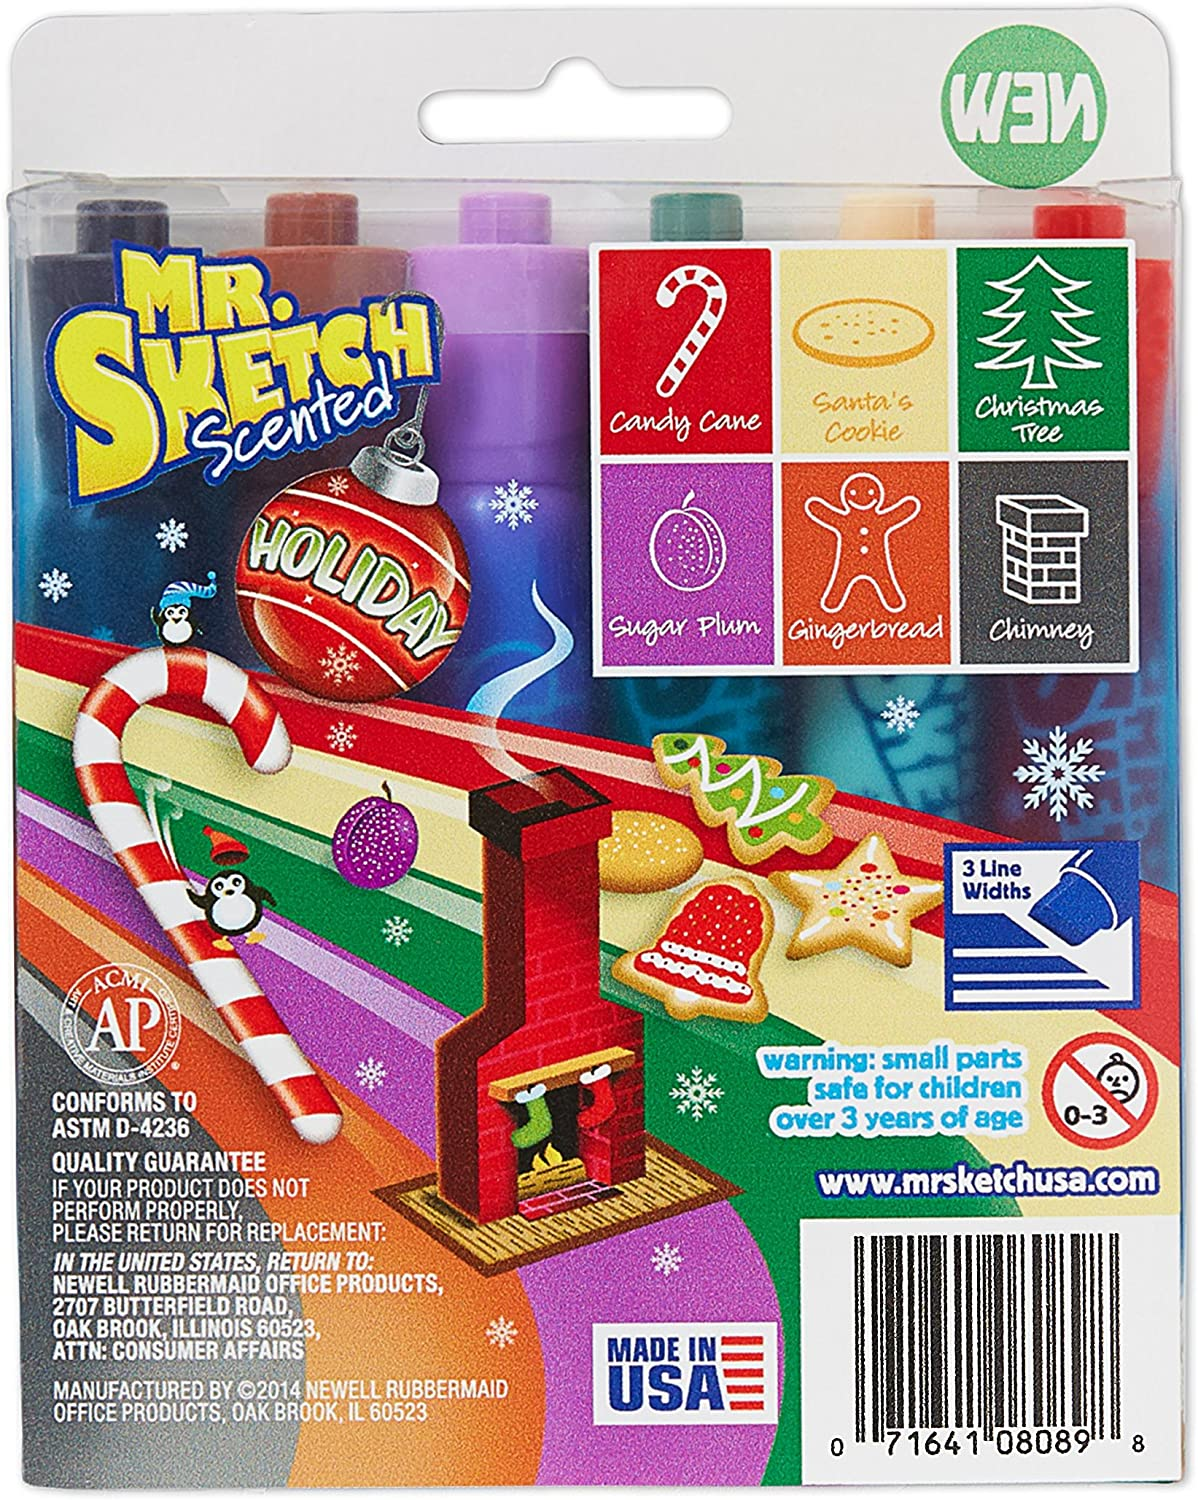 Mr. Sketch 1924061 Washable Scented Markers, Chisel Tip, Assorted Colors, 14-Count: Office Products